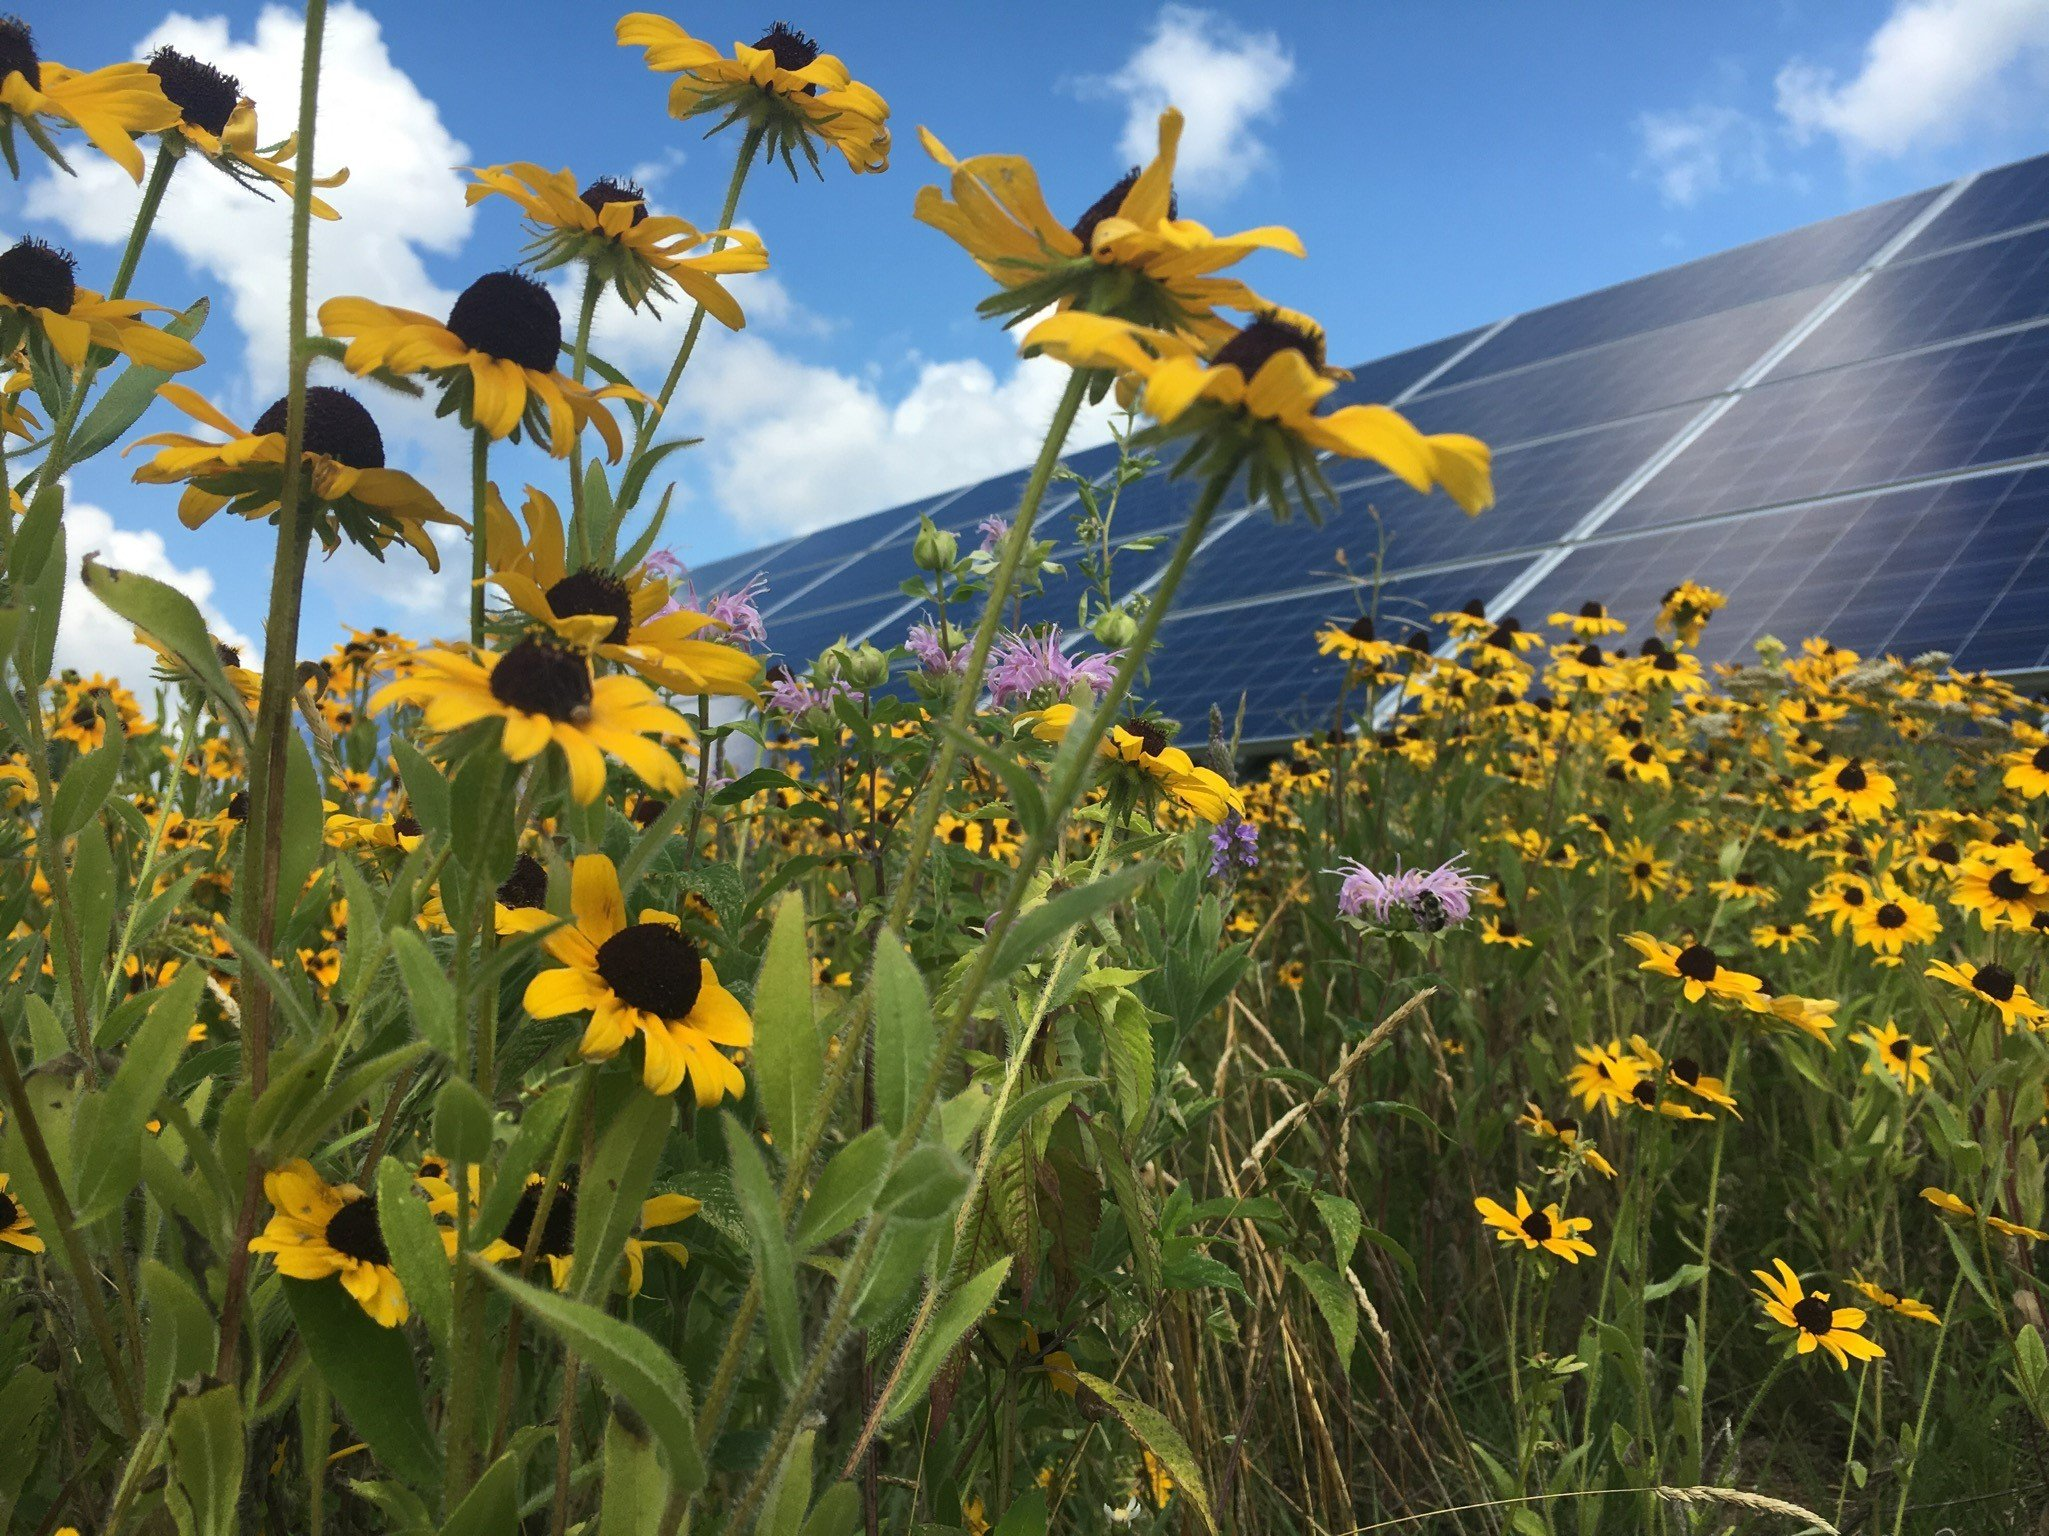 Creating Low-Impact, Pollinator-Friendly Solar Energy Sites with Native Seeds